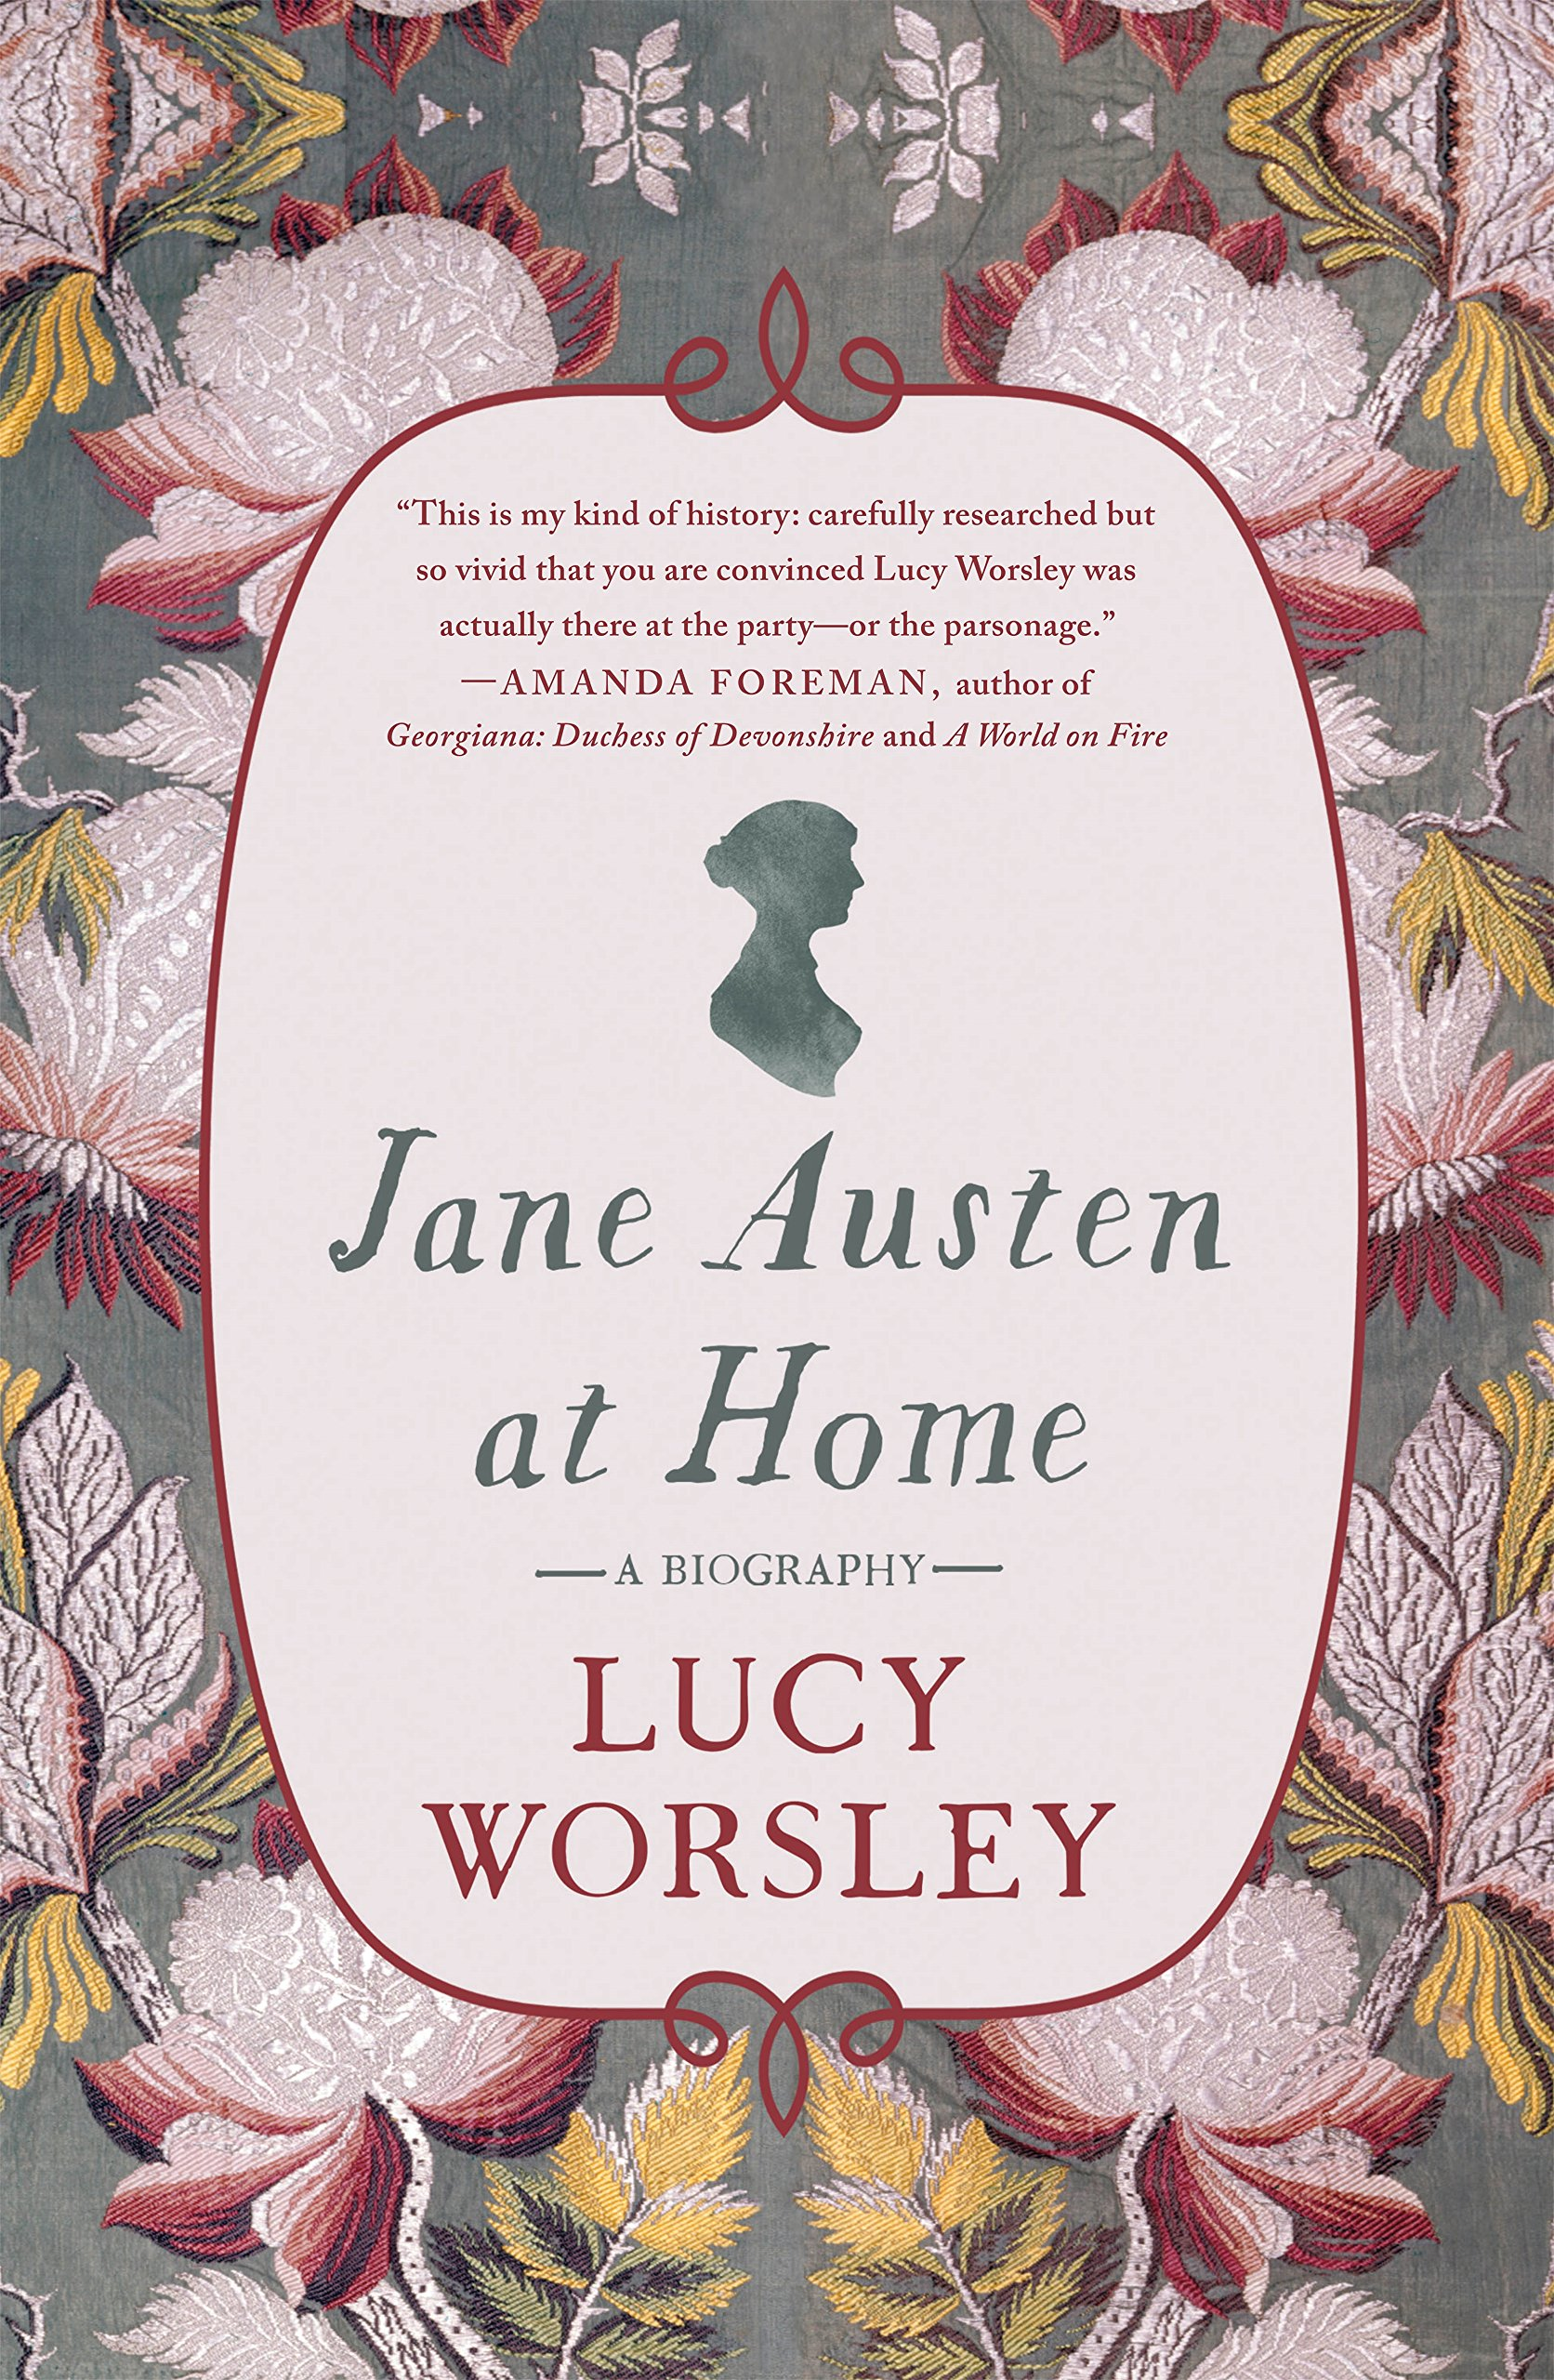 Jane Austen at Home, by Lucy Worsley (2017)